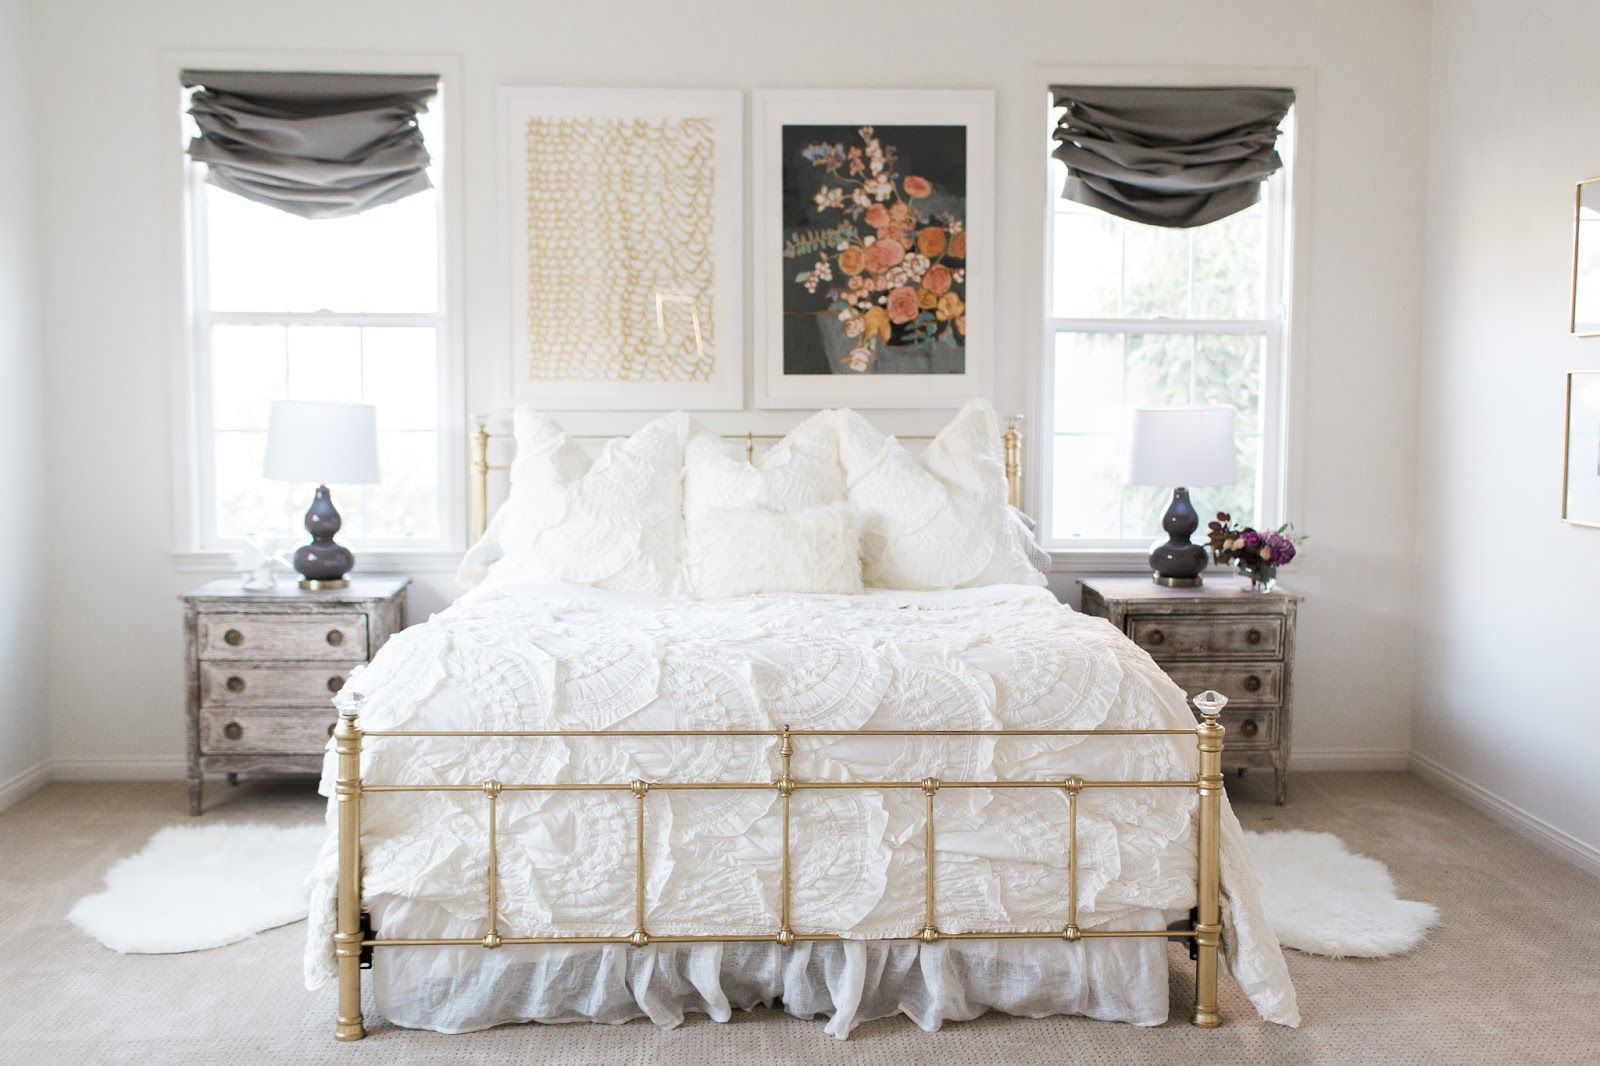 ROOM REVEAL: E-DESIGN MASTER BEDROOM | house collected